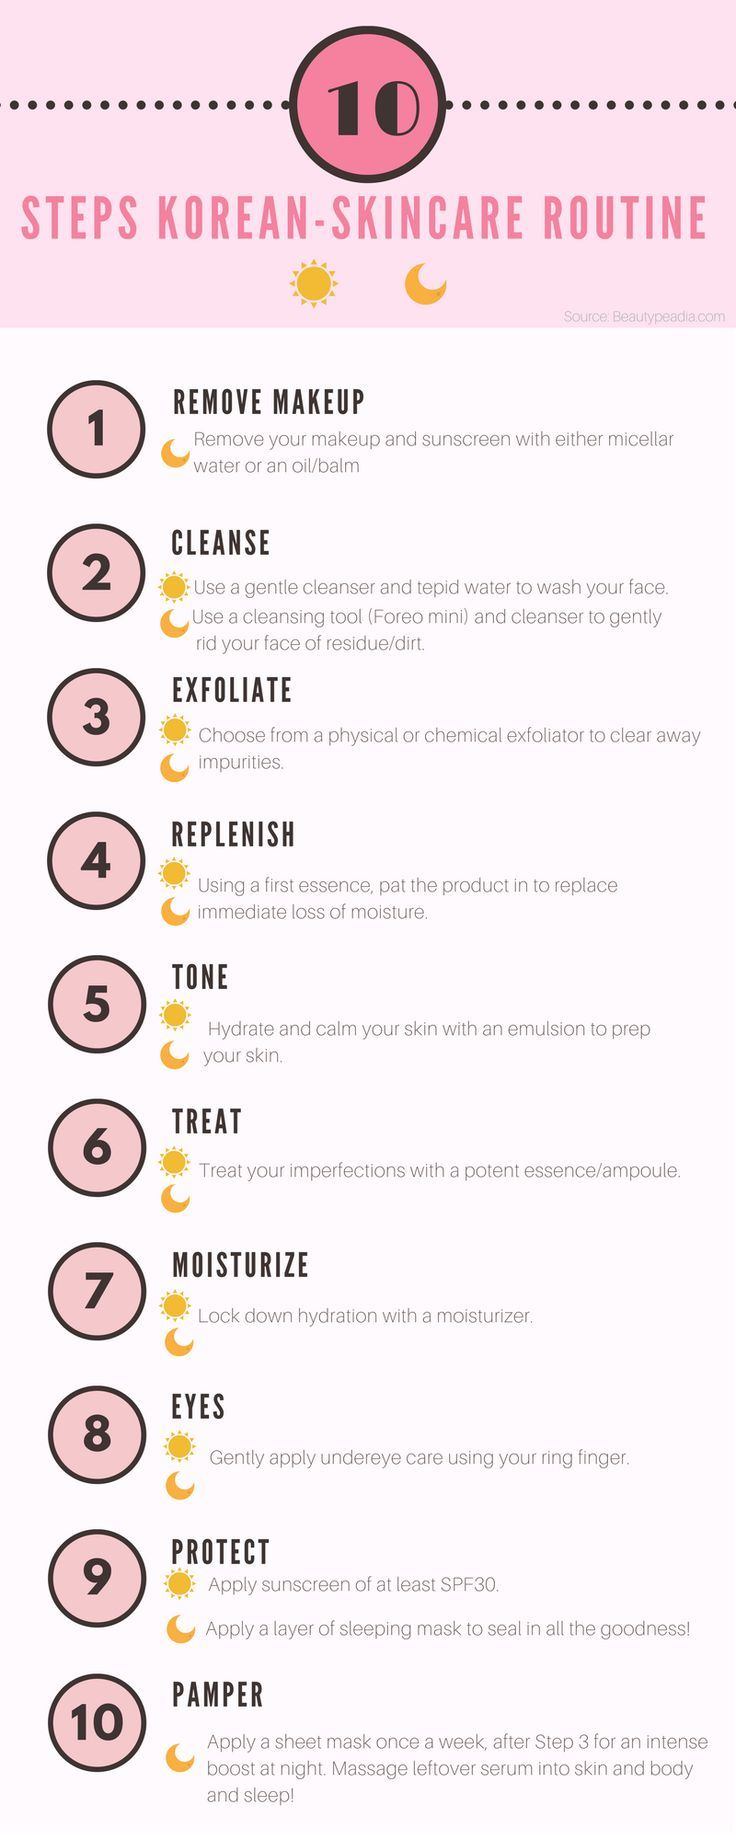 These are the BEST skin care hacks, tips and tricks Ive ever